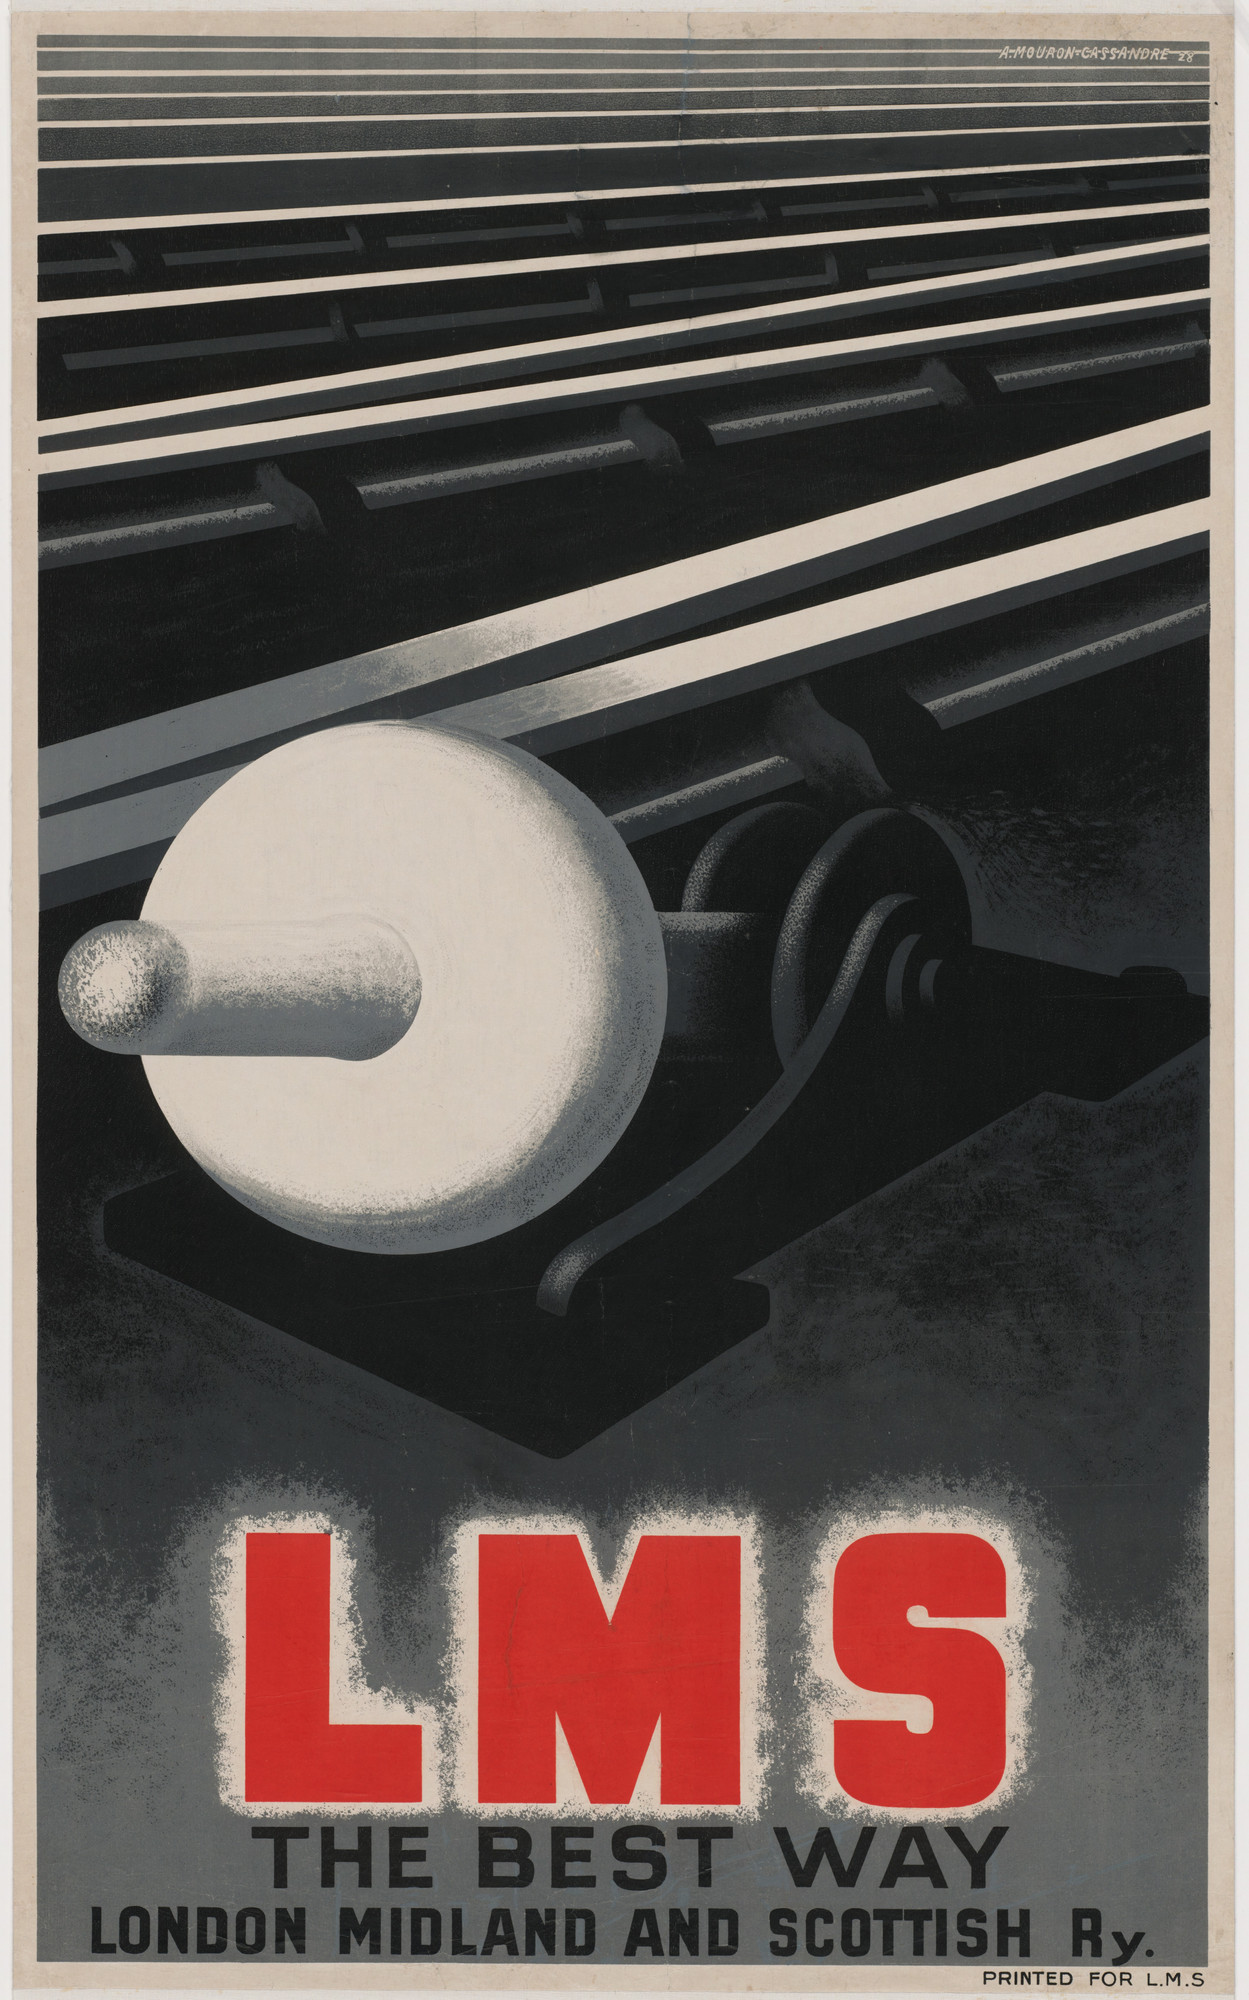 A. M. Cassandre. LMS The Best Way, London Midland and Scottish Ry. 1928